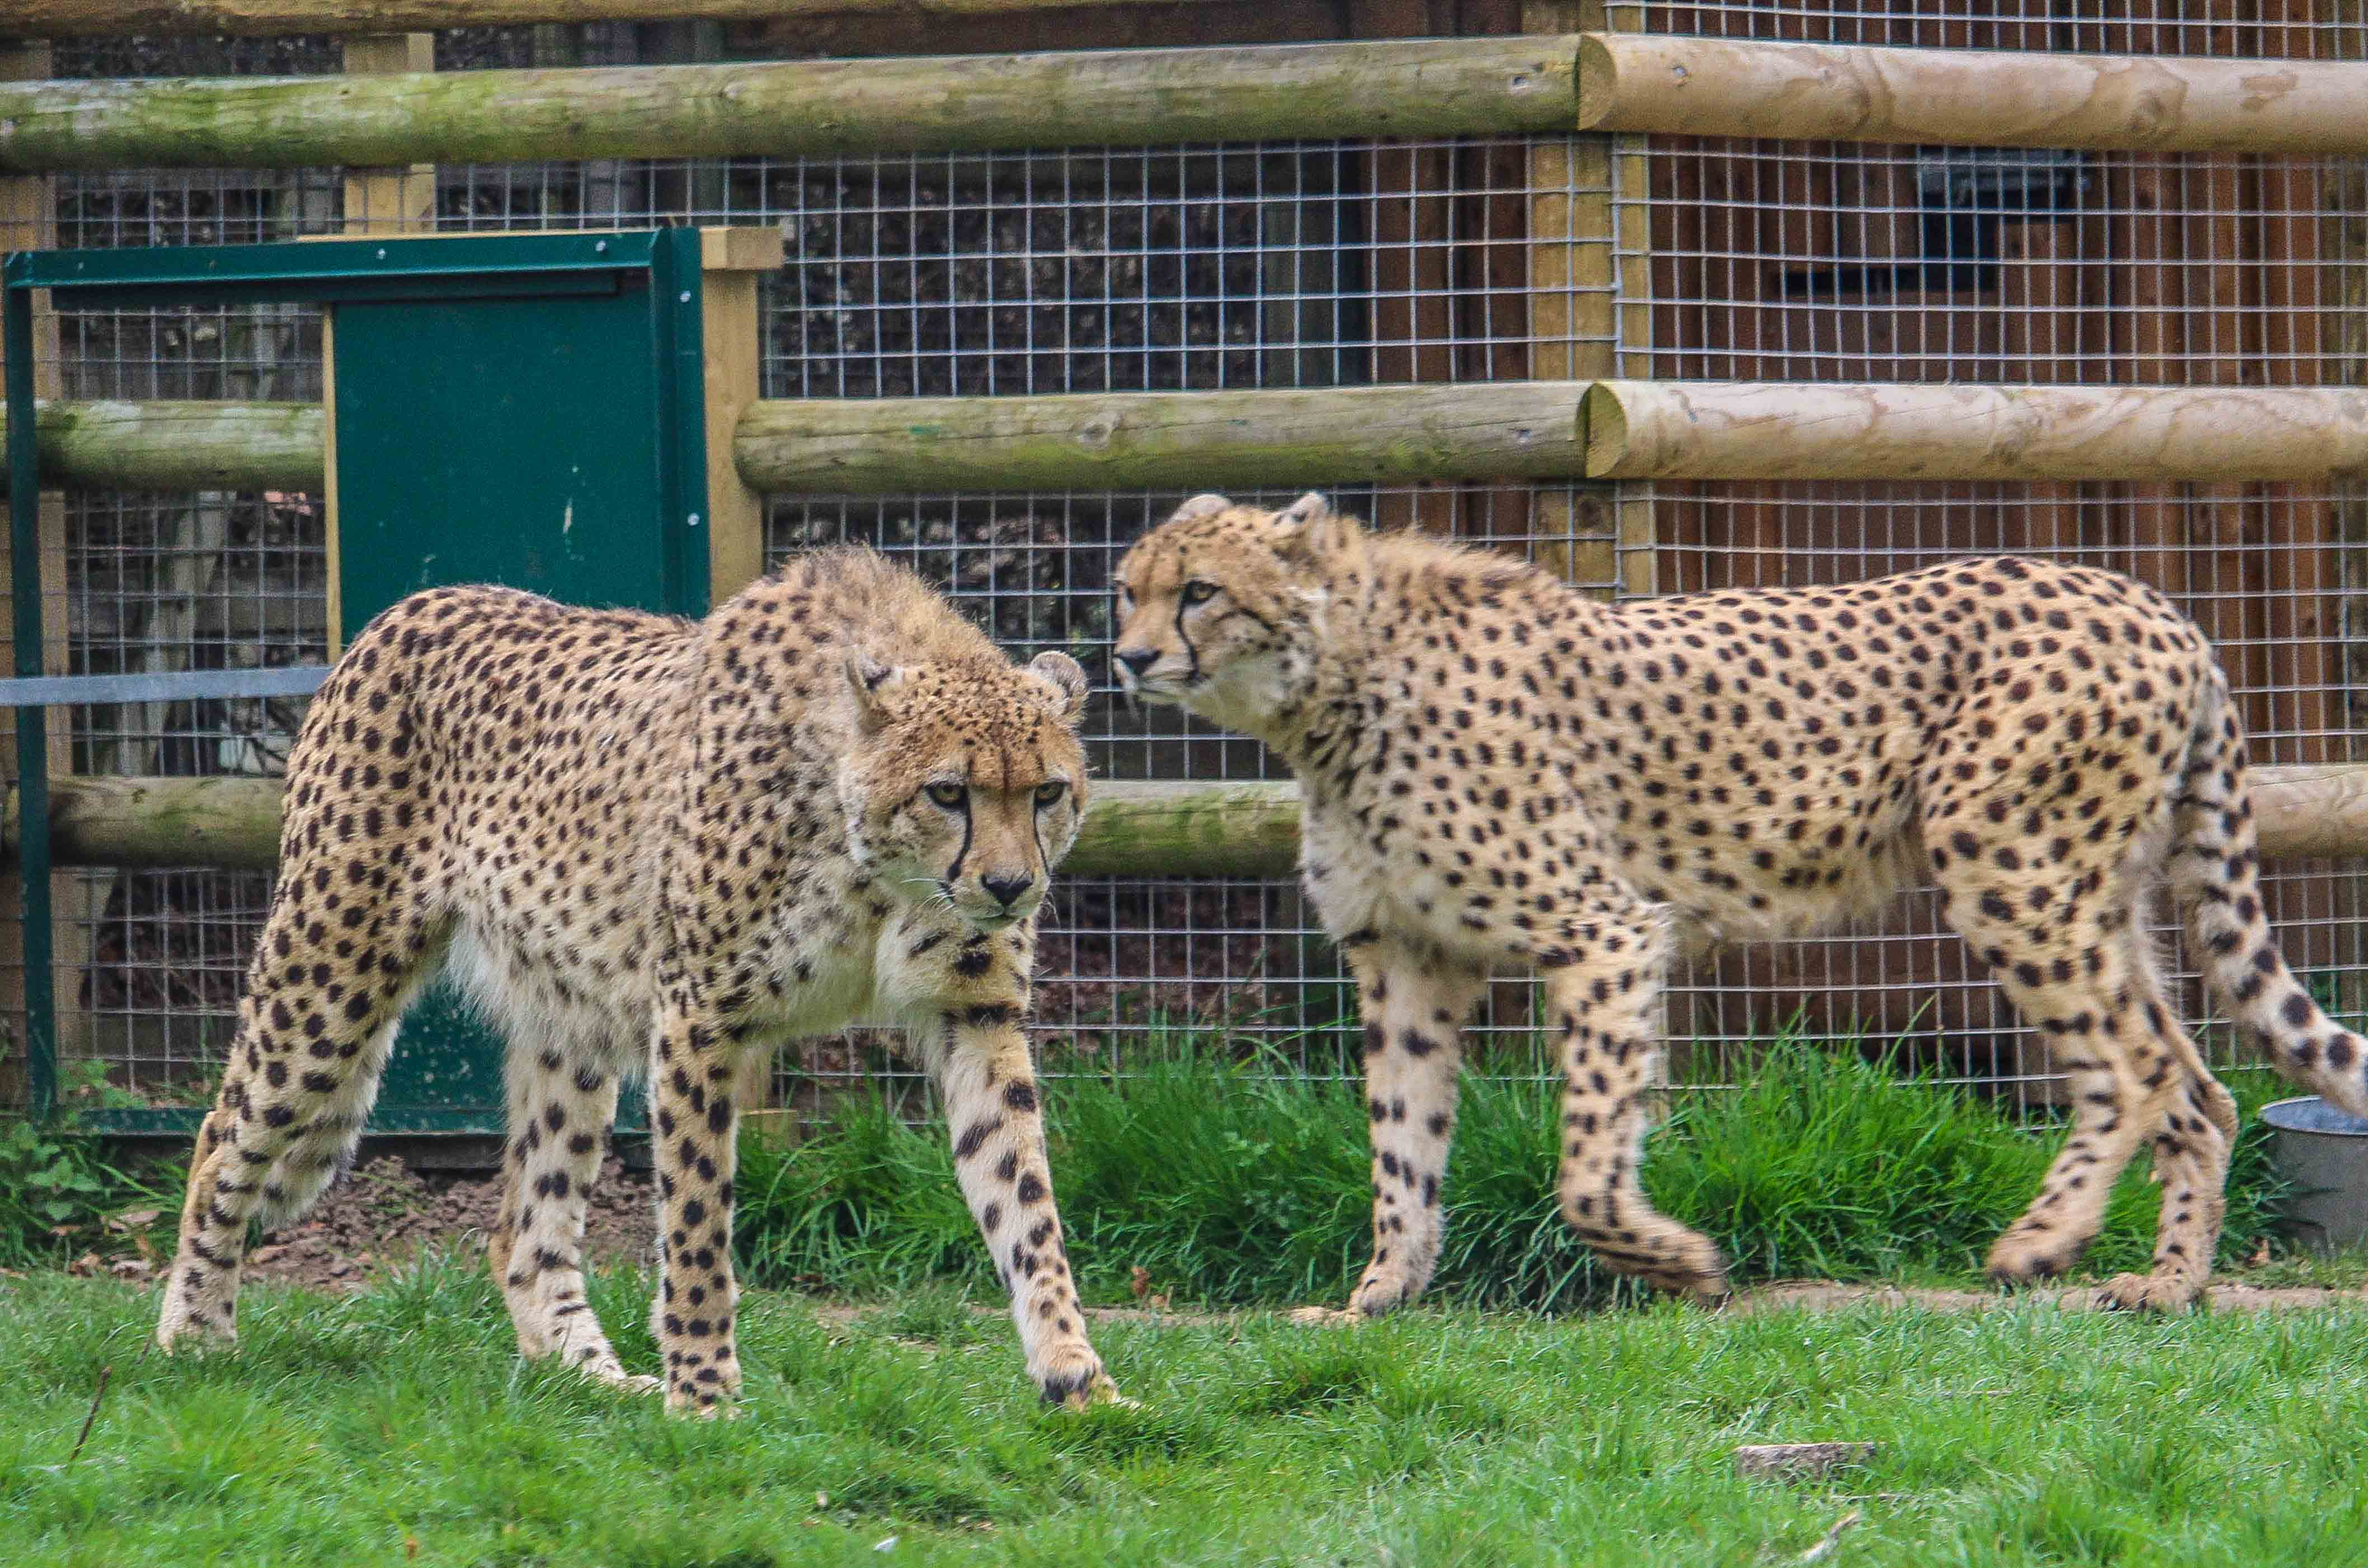 Cheetahs from UK sent to SA for rewilding